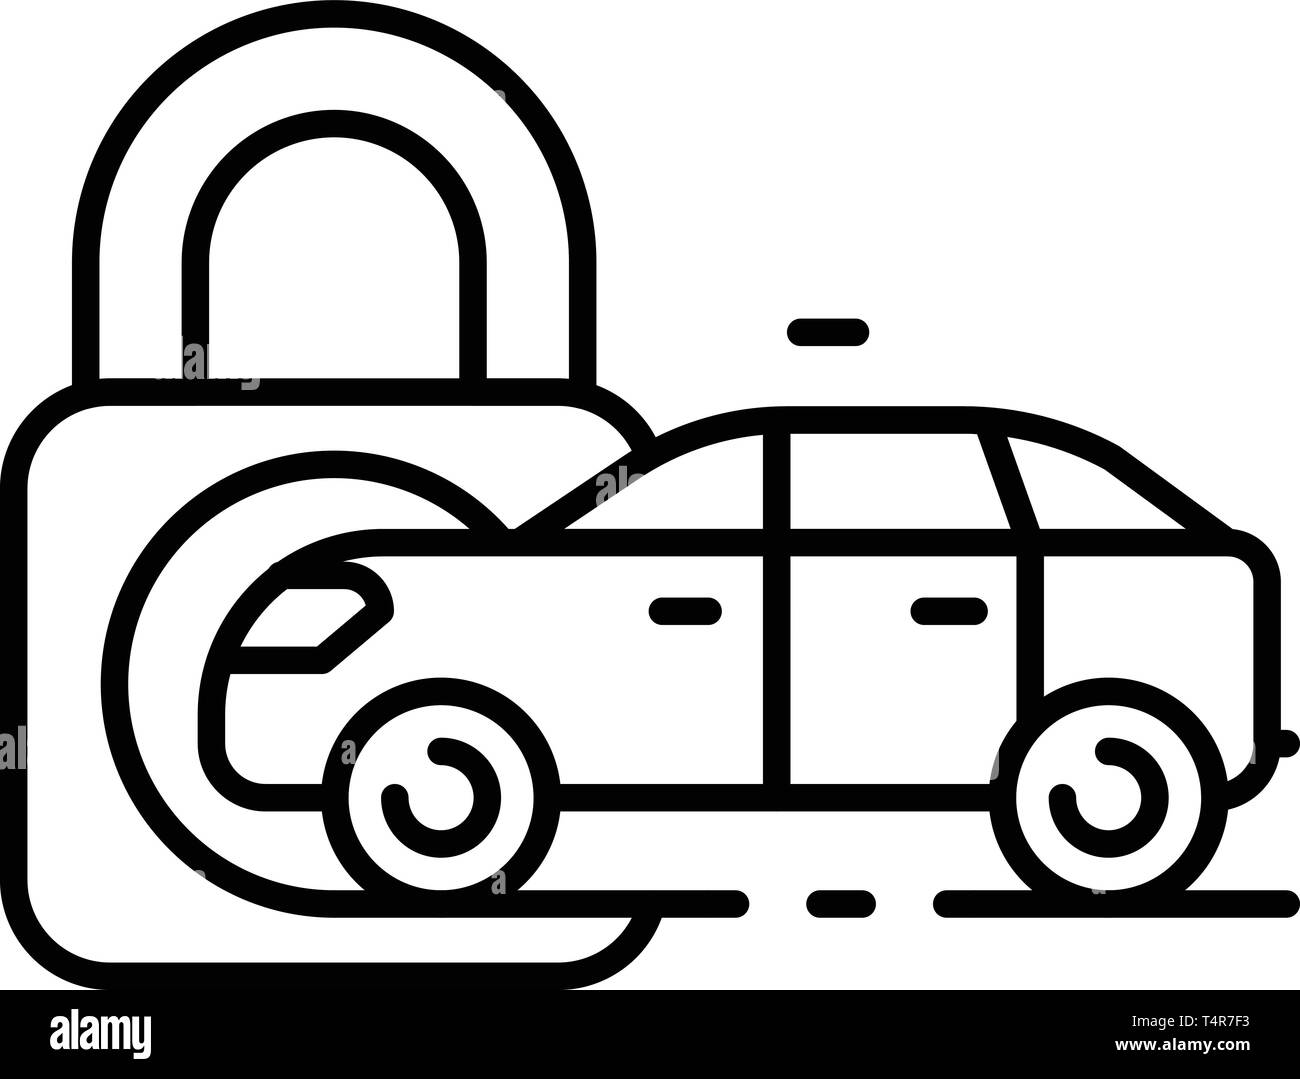 Locked car icon, outline style - Stock Image